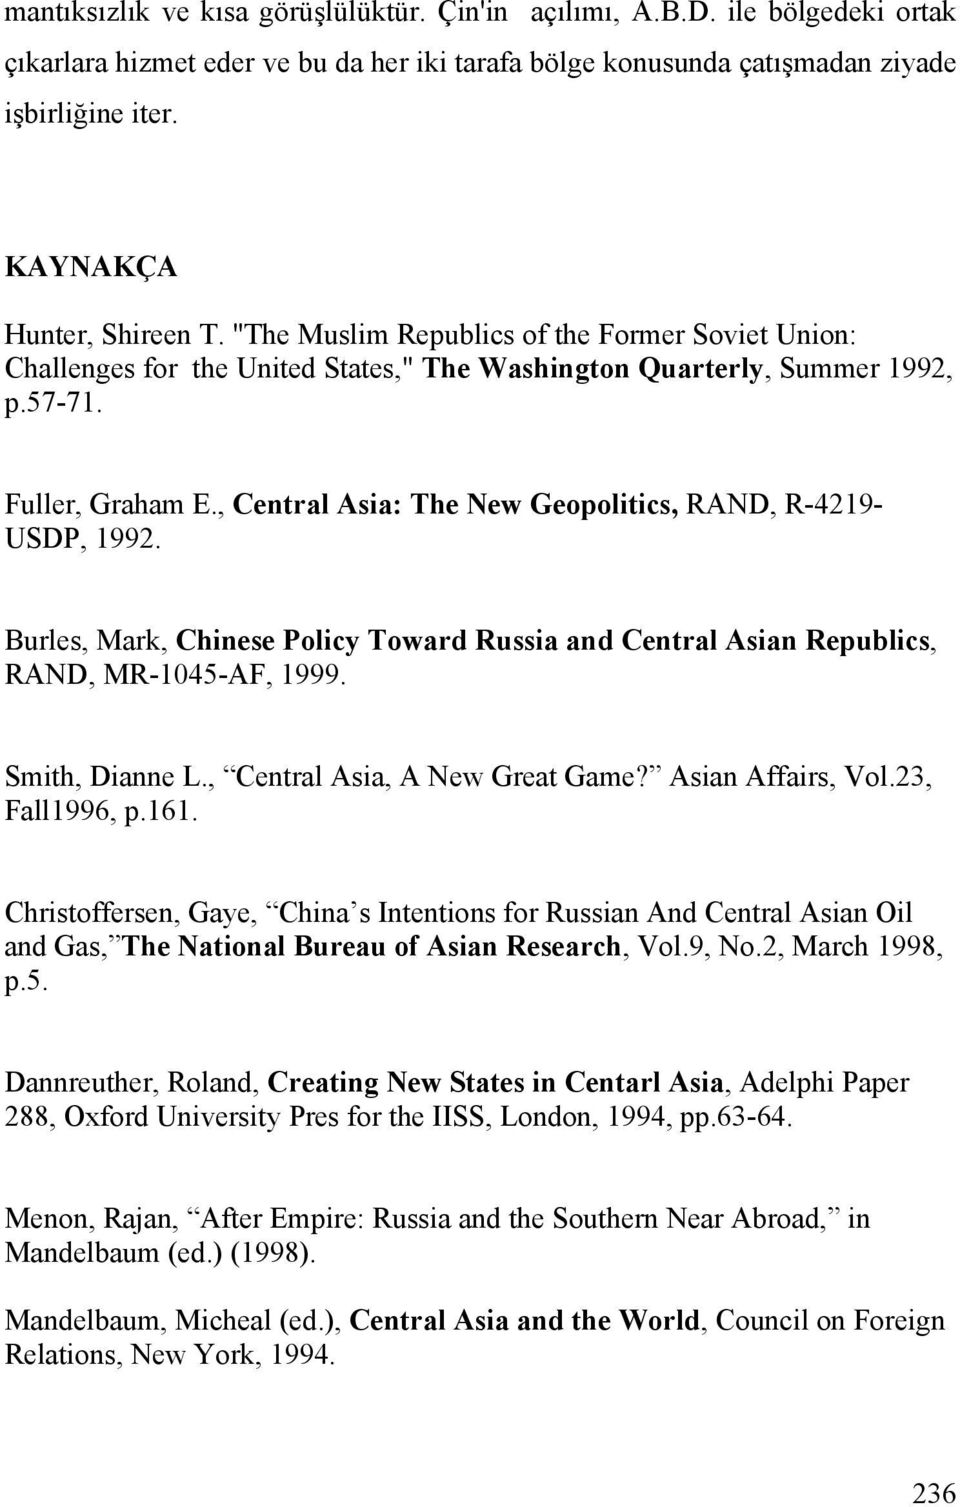 , Central Asia: The New Geopolitics, RAND, R-4219- USDP, 1992. Burles, Mark, Chinese Policy Toward Russia and Central Asian Republics, RAND, MR-1045-AF, 1999. Smith, Dianne L.